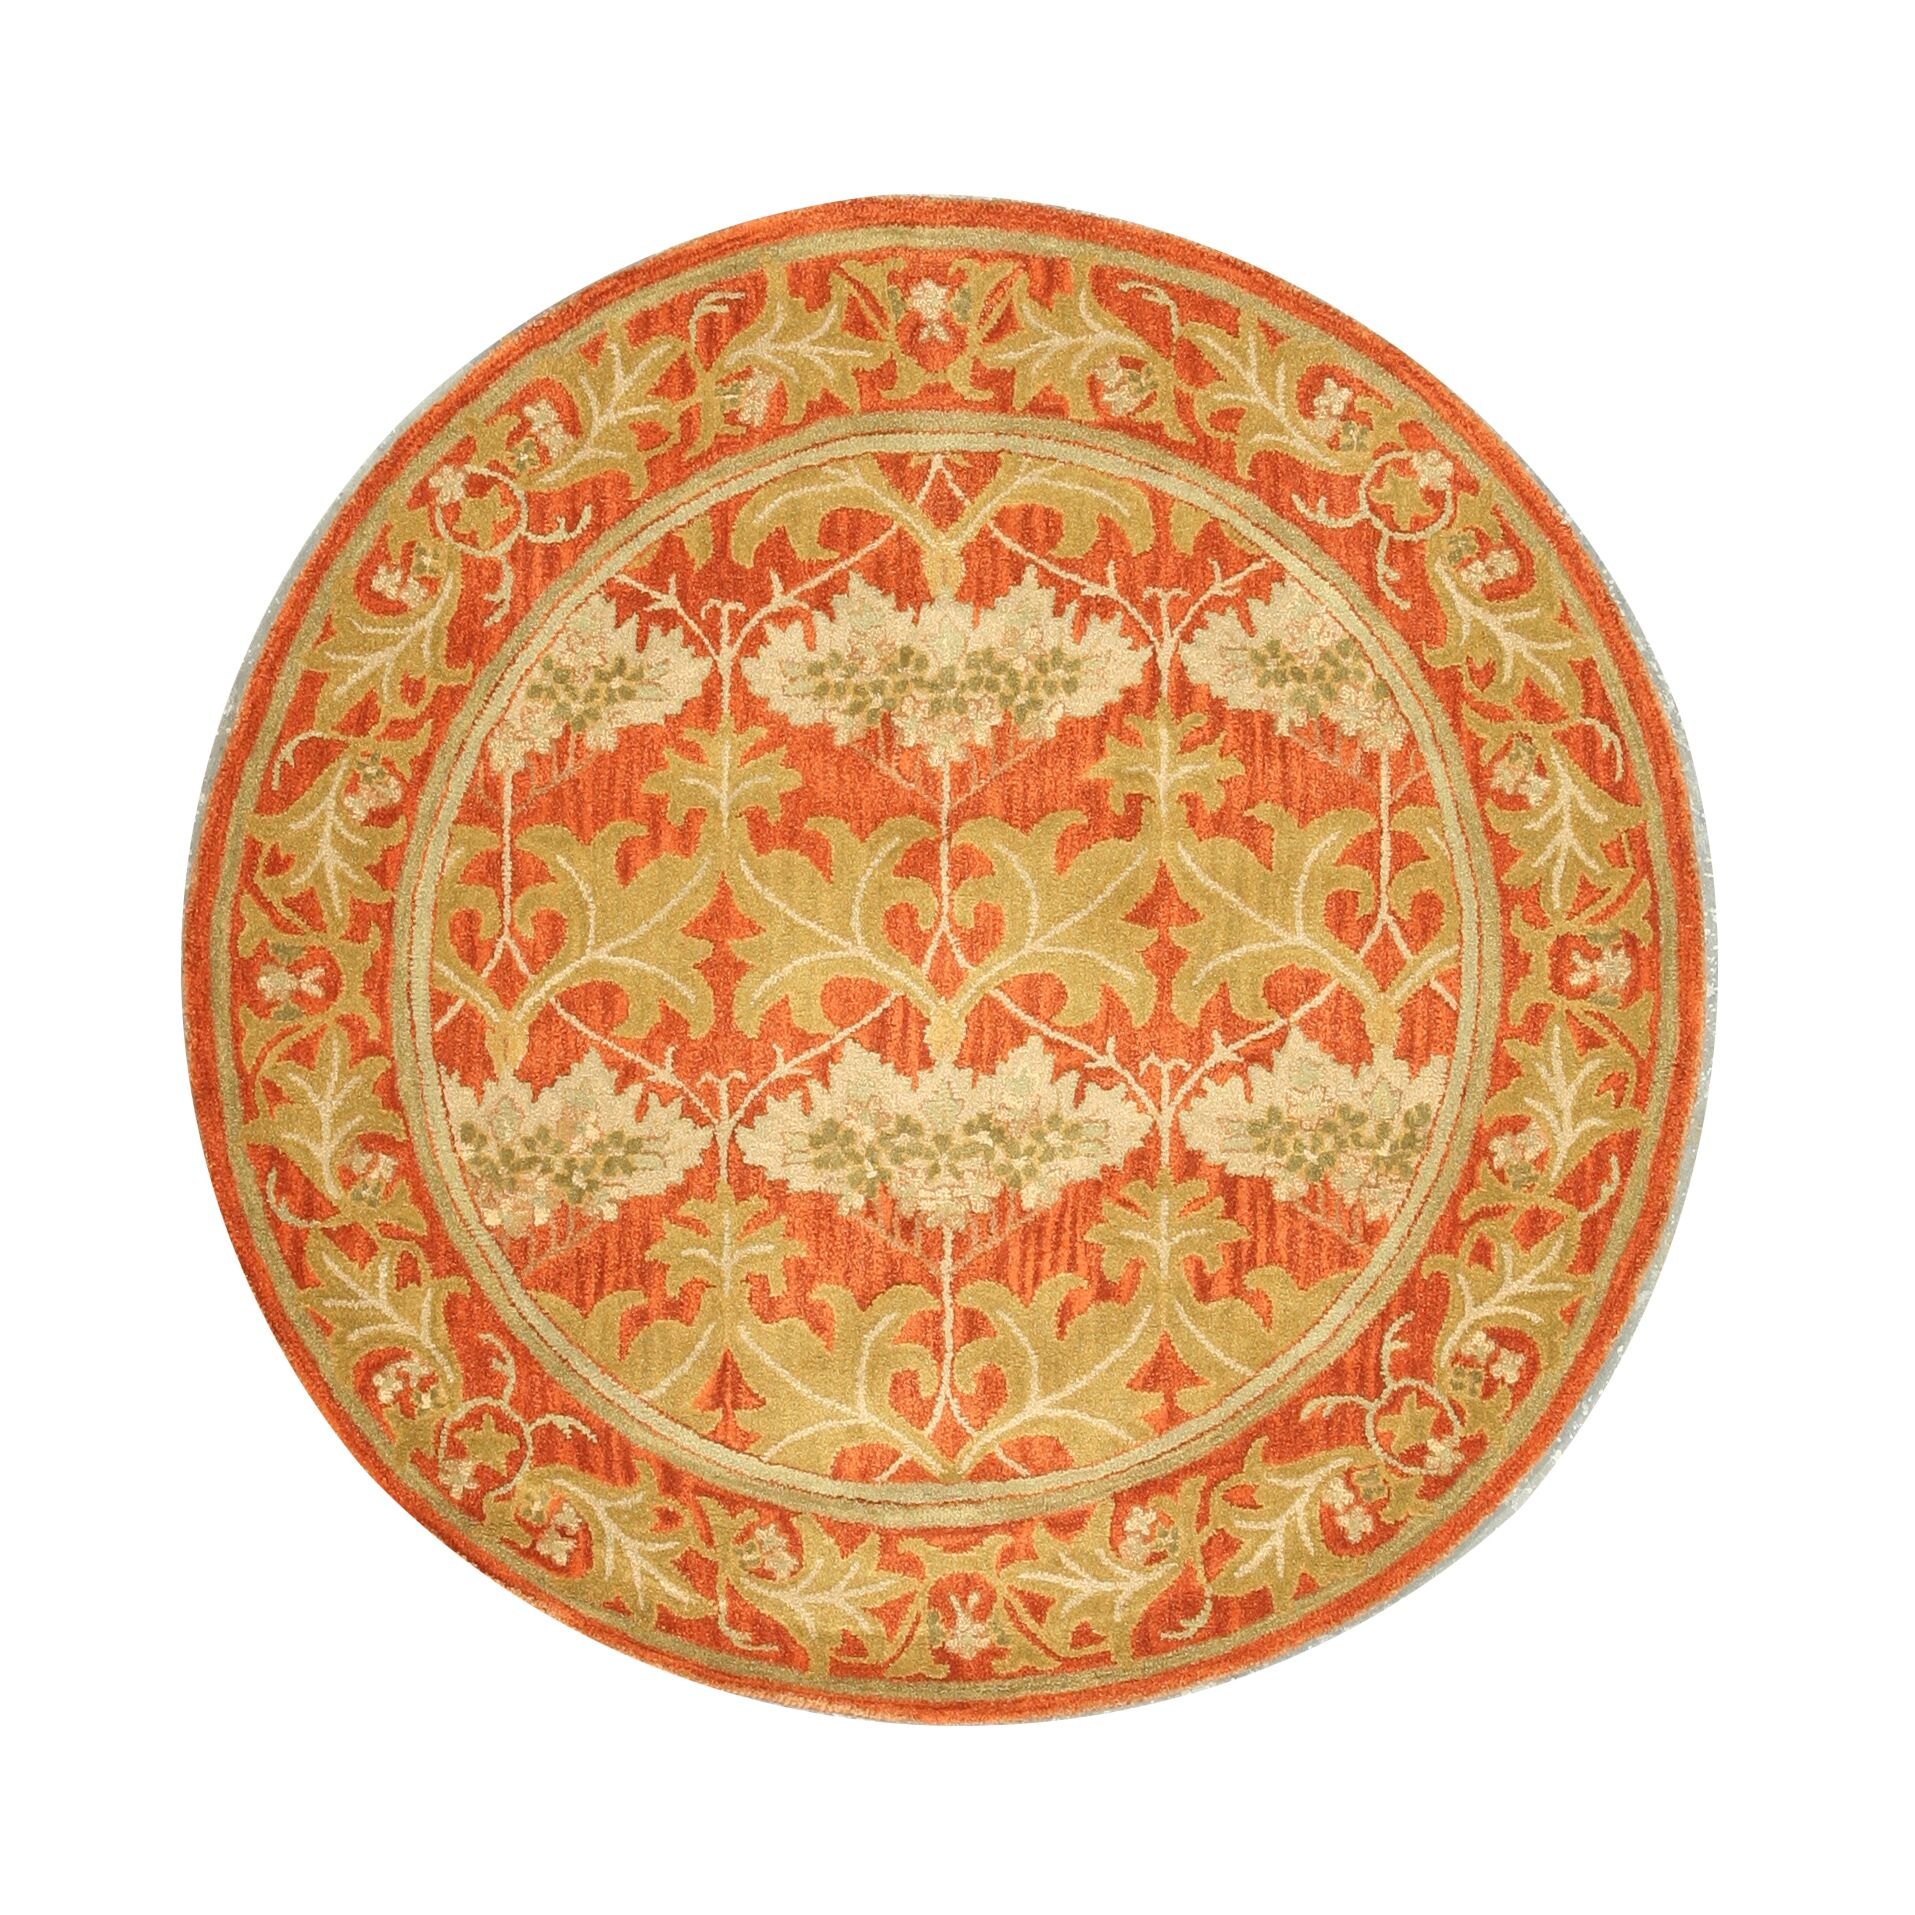 Lehman Hand-Tufted Rust Area Rug Rug Size: Round 6'